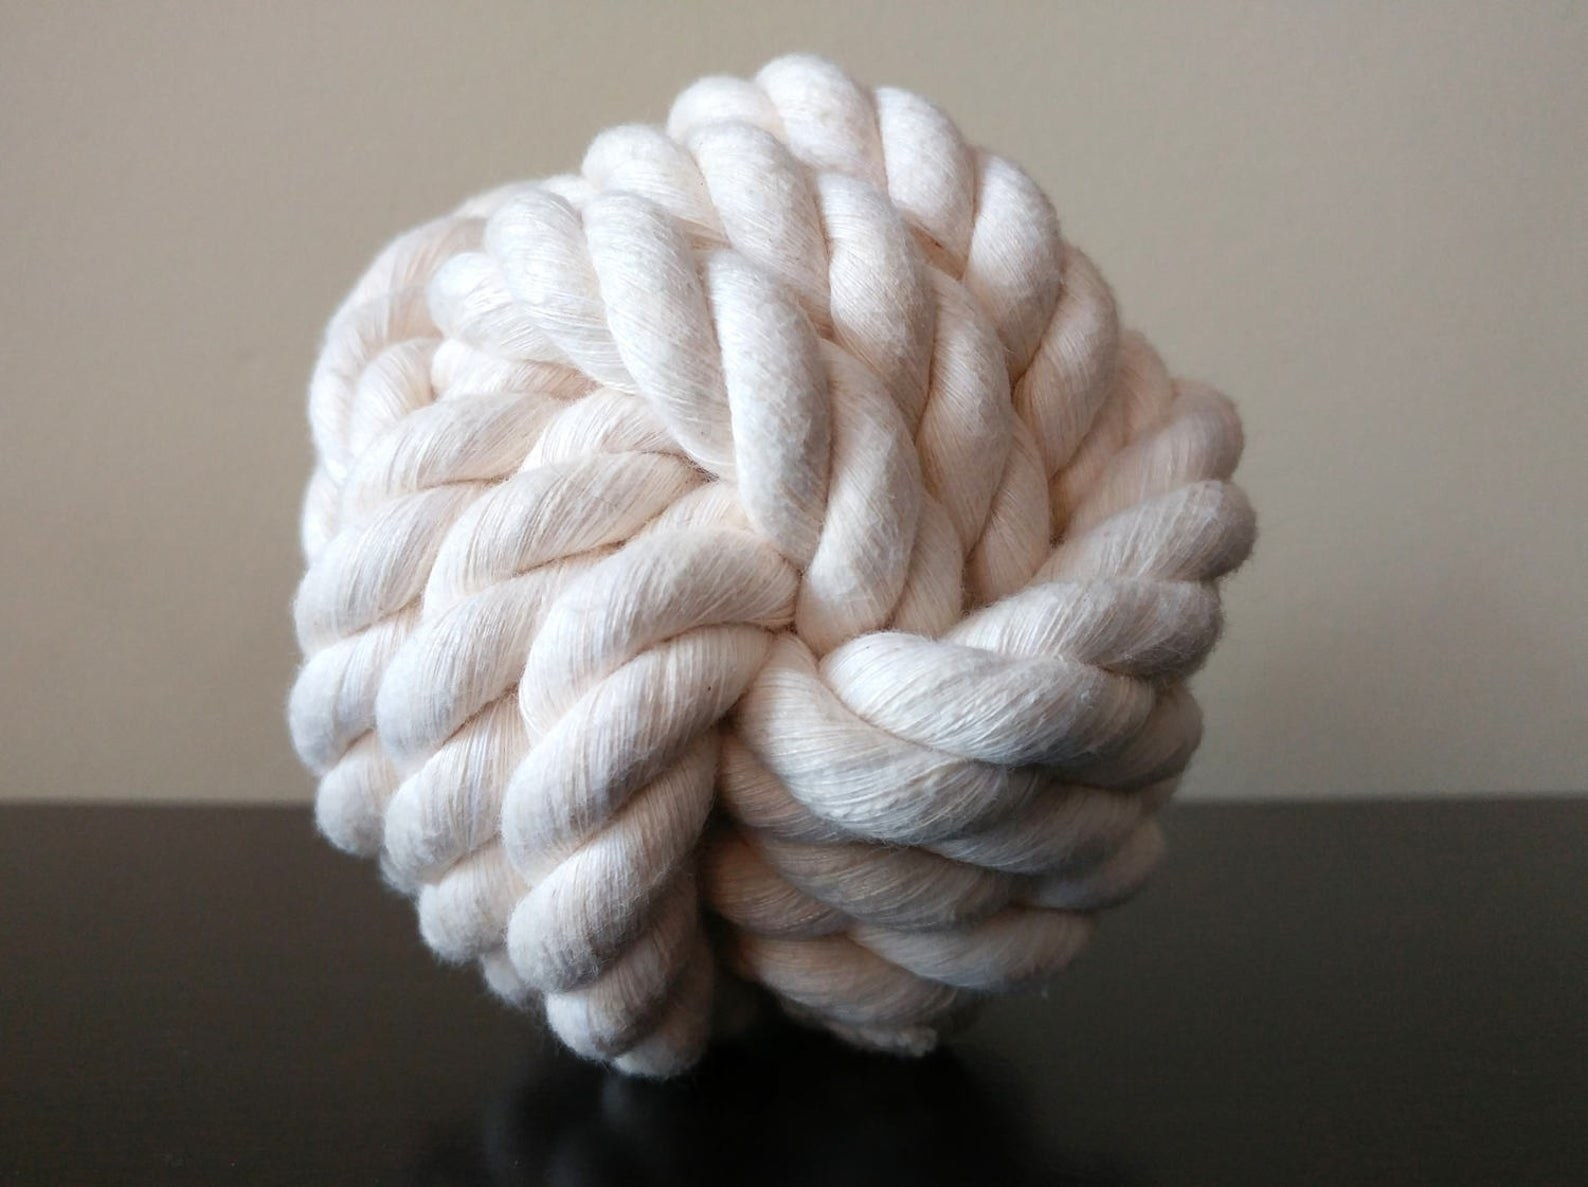 The braided rope toy in the shape of a ball